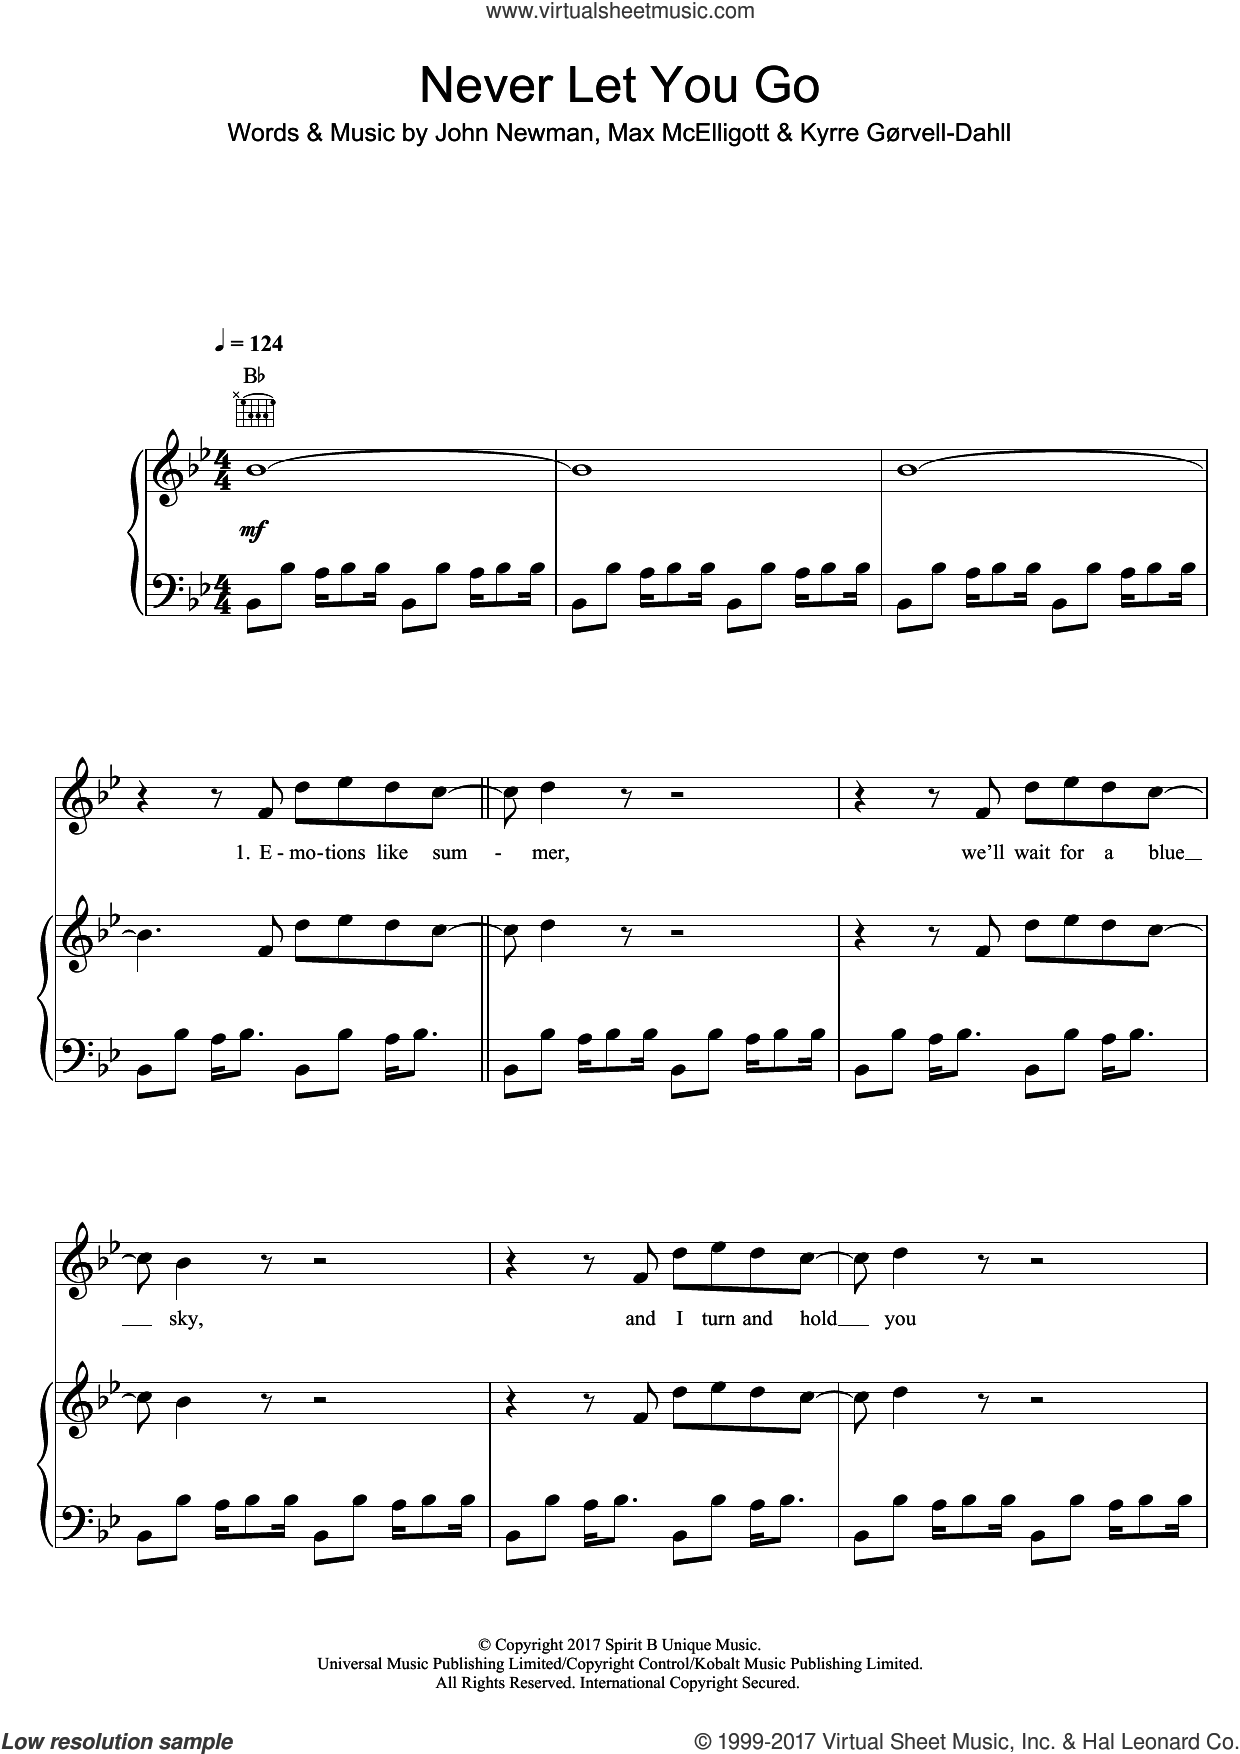 Never Let You Go (featuring John Newman) sheet music for voice, piano or guitar by Kygo, John Newman, Kyrre GAurvell-Dahll and Max McElligott, intermediate skill level